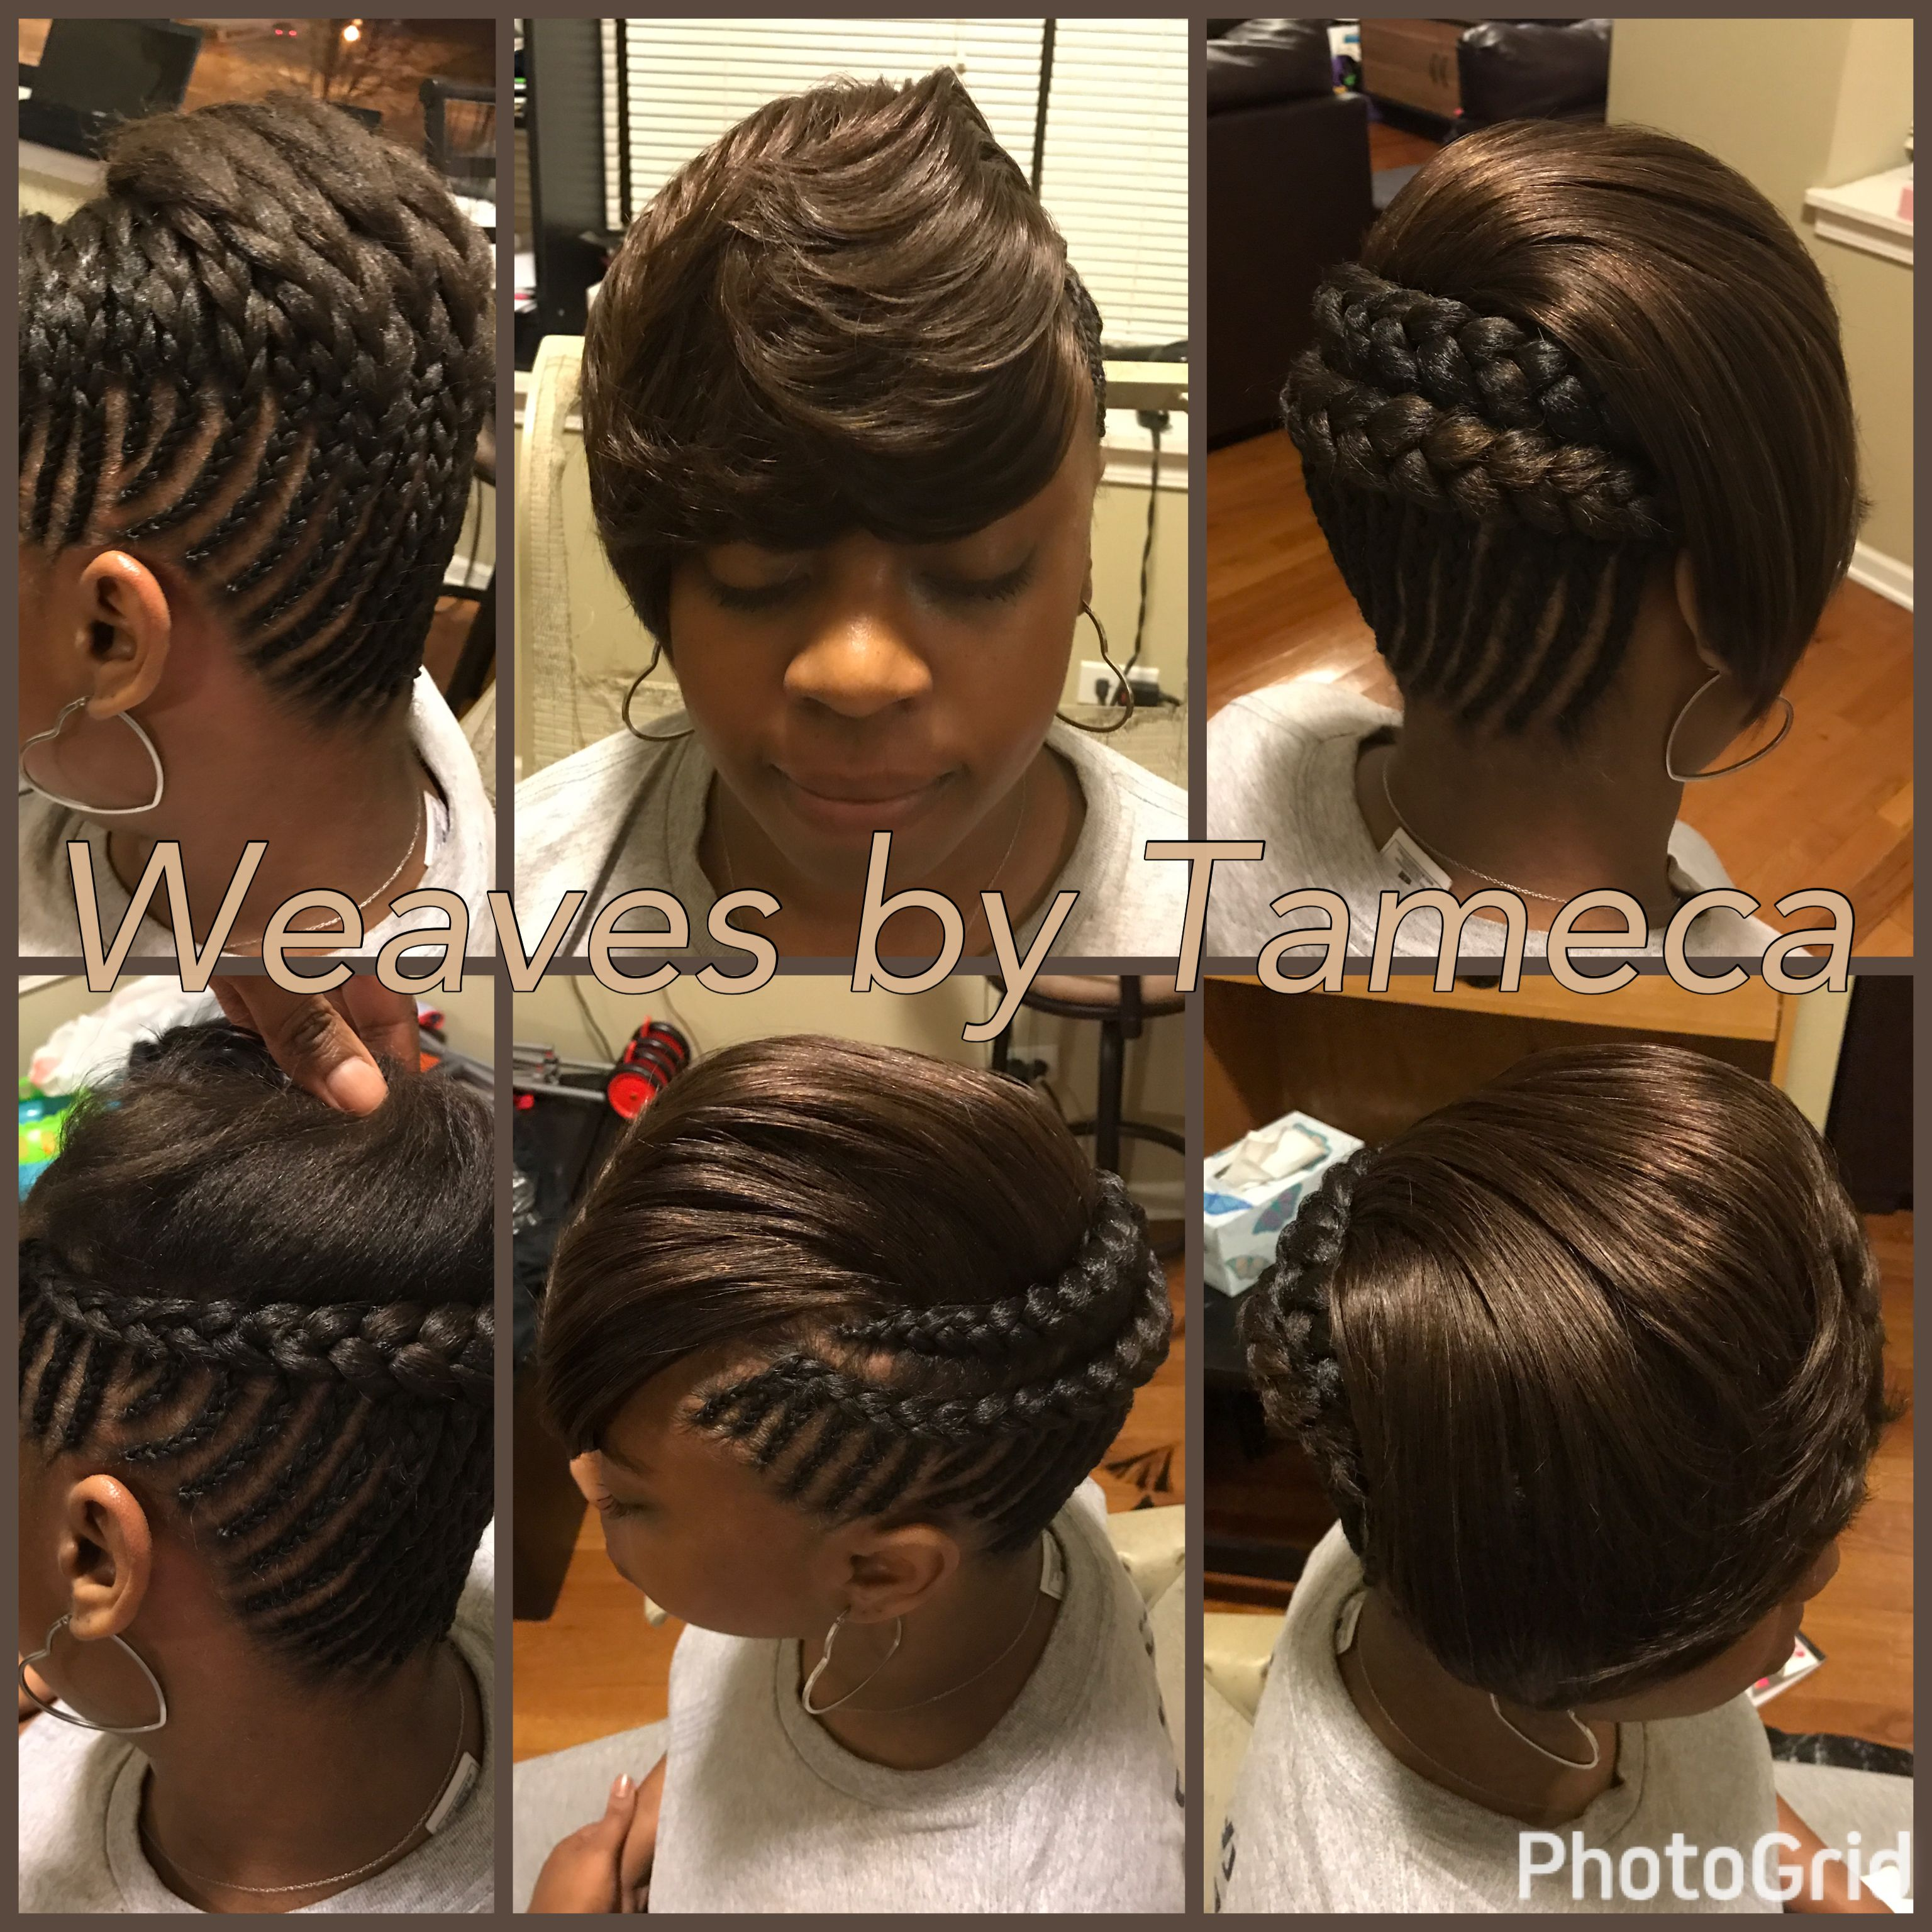 feed in braids, feathered bang, bob look, french braids, quick